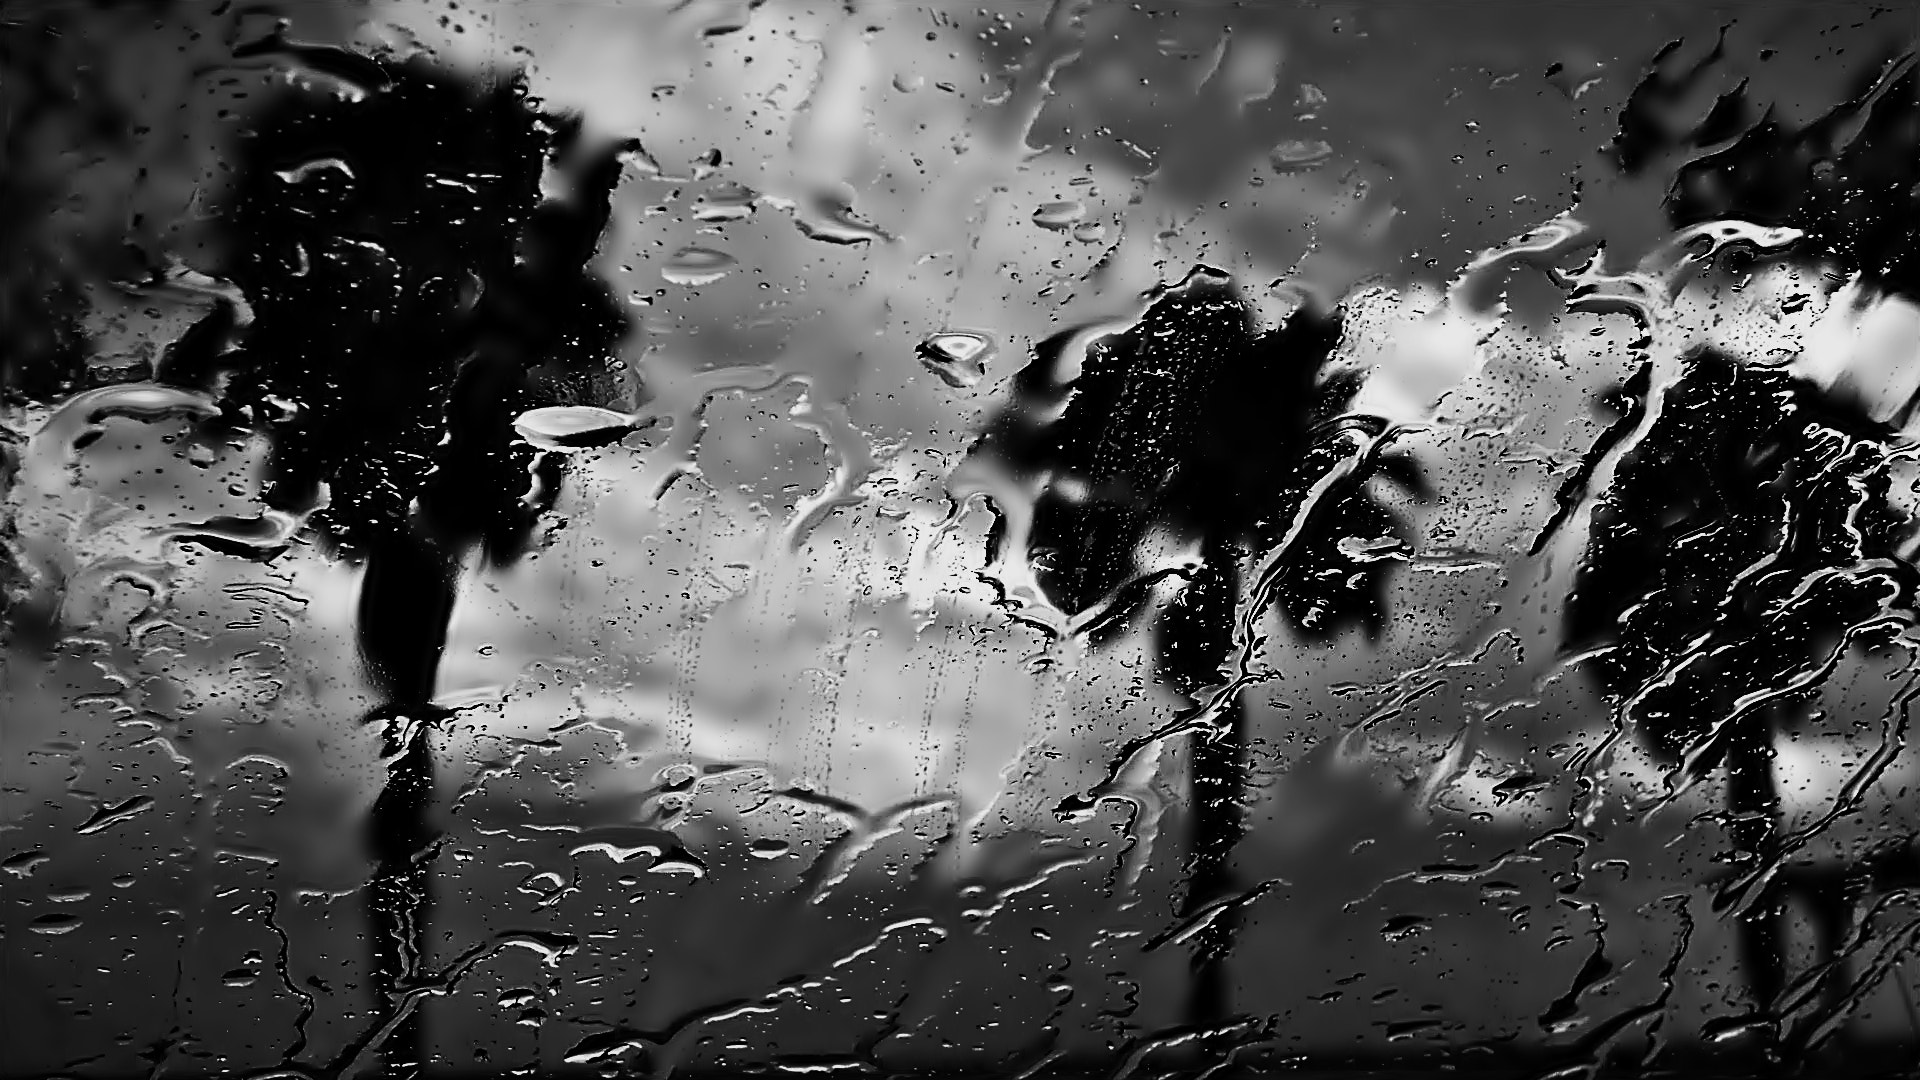 Photograph Can stop the rain from getting in by milena seita on 500px